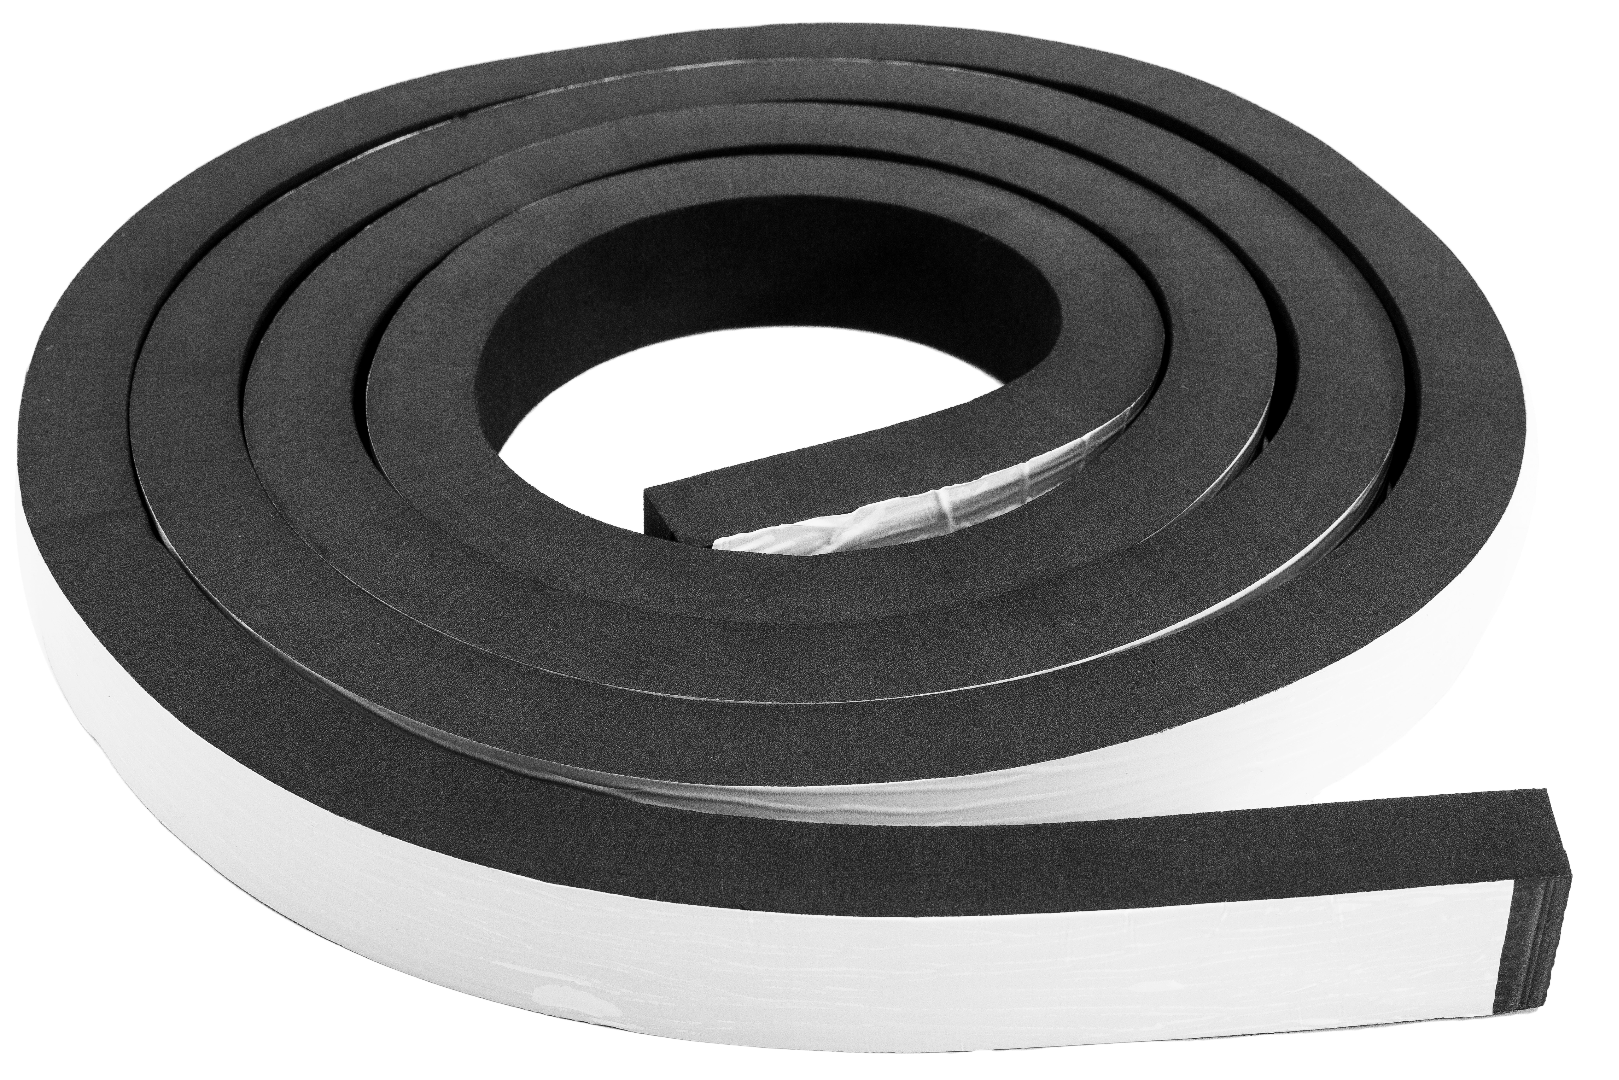 self-adhesive-spongeous-profile-21-x-30-x-2800mm-ntg-adapter